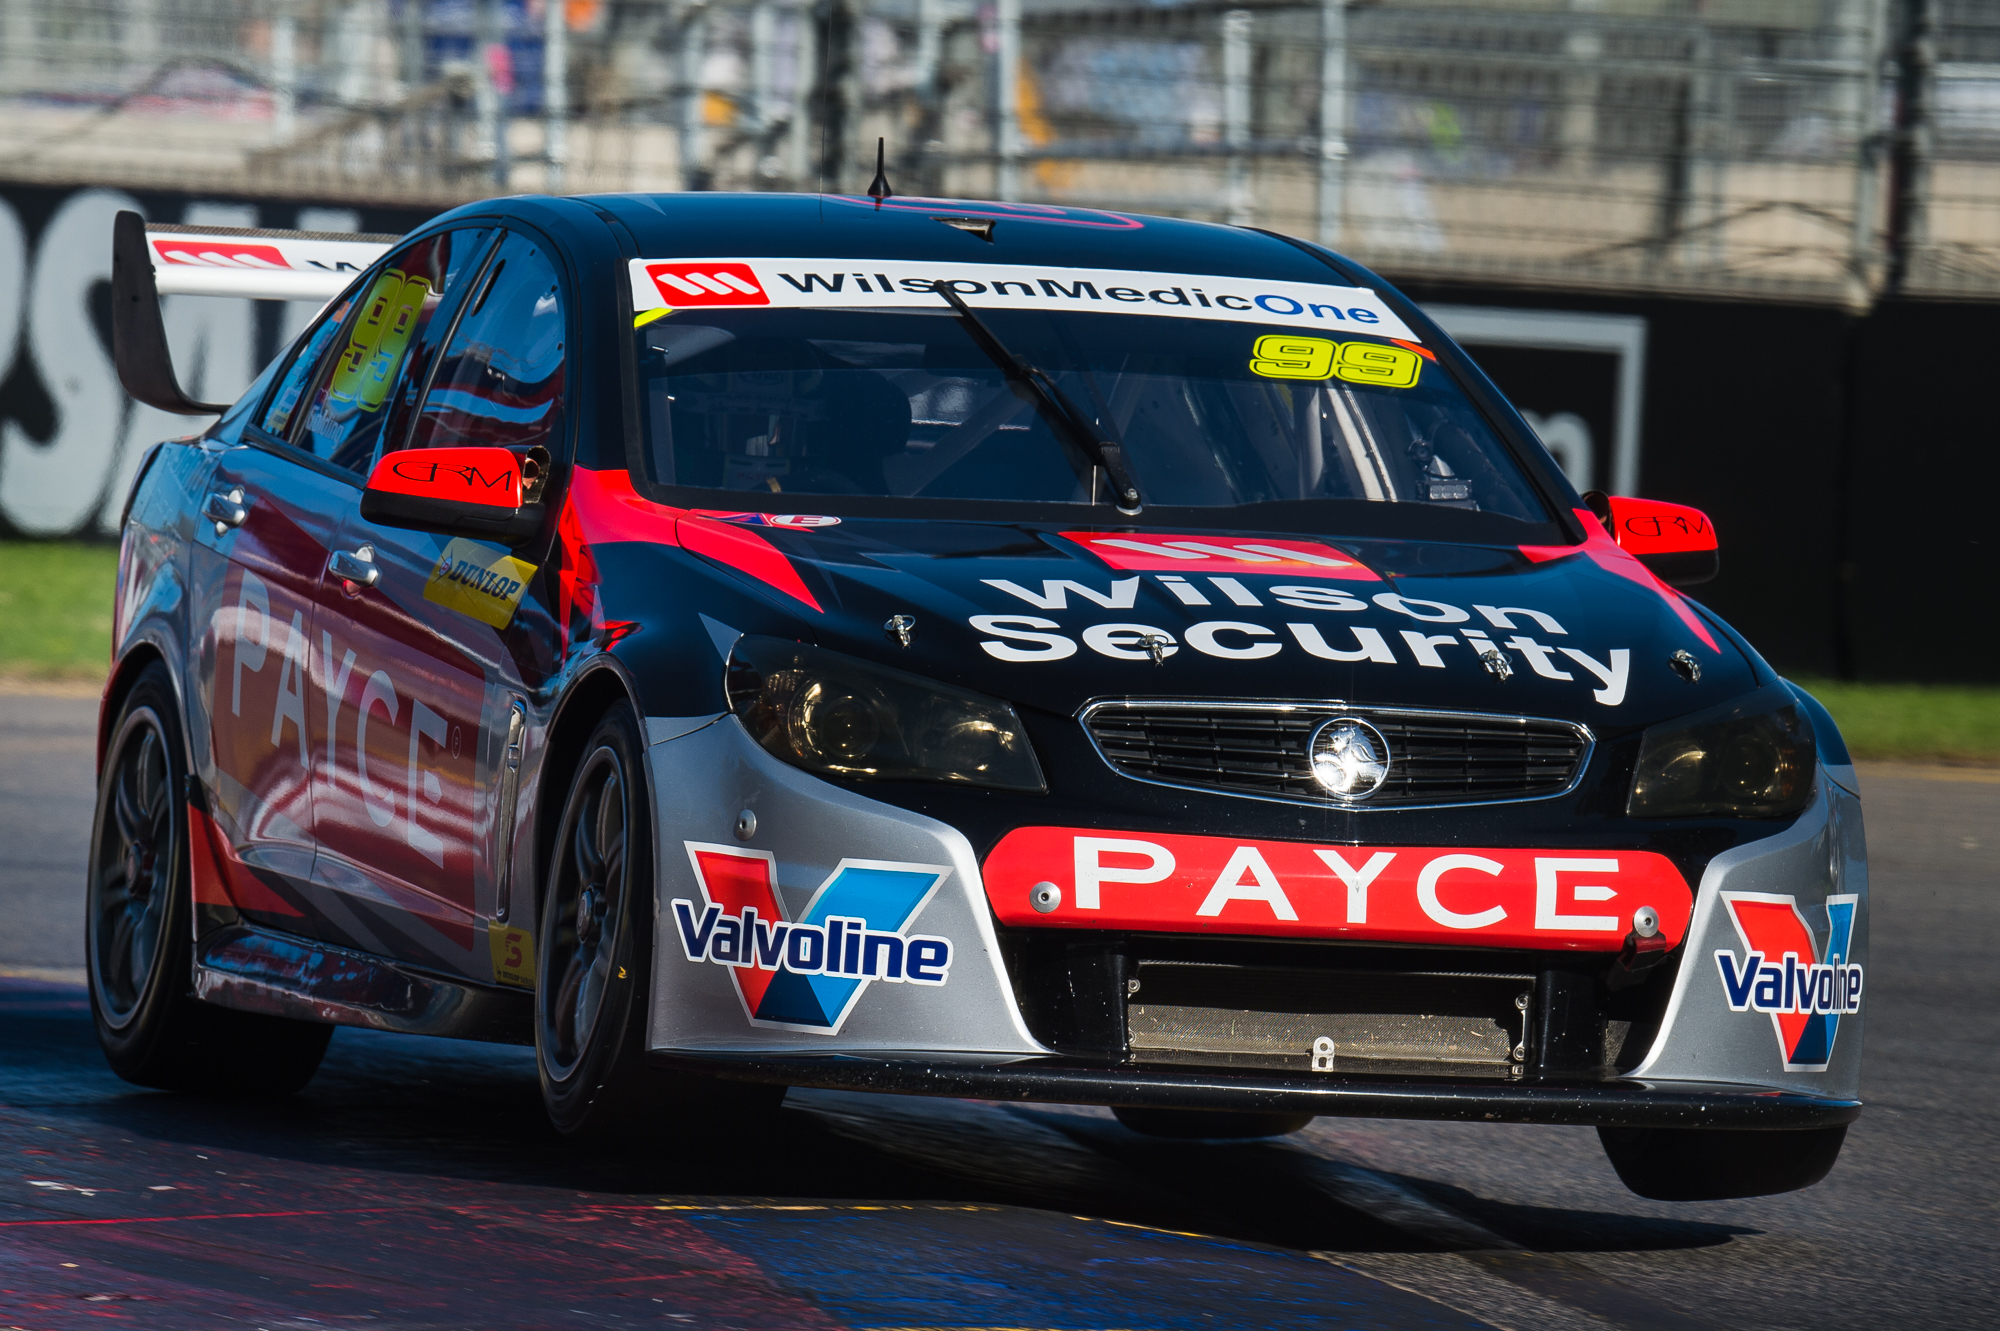 2016 V8 Supercars Round 1. Clipsal 500, Adelaide, South Australia, Australia. Friday 4th March - Sunday 6th March 2016. World Copyright: Volvo Cyan Racing Ref: Digital Image 020316_CLIPSAL500_DKIMG_3820.NEF